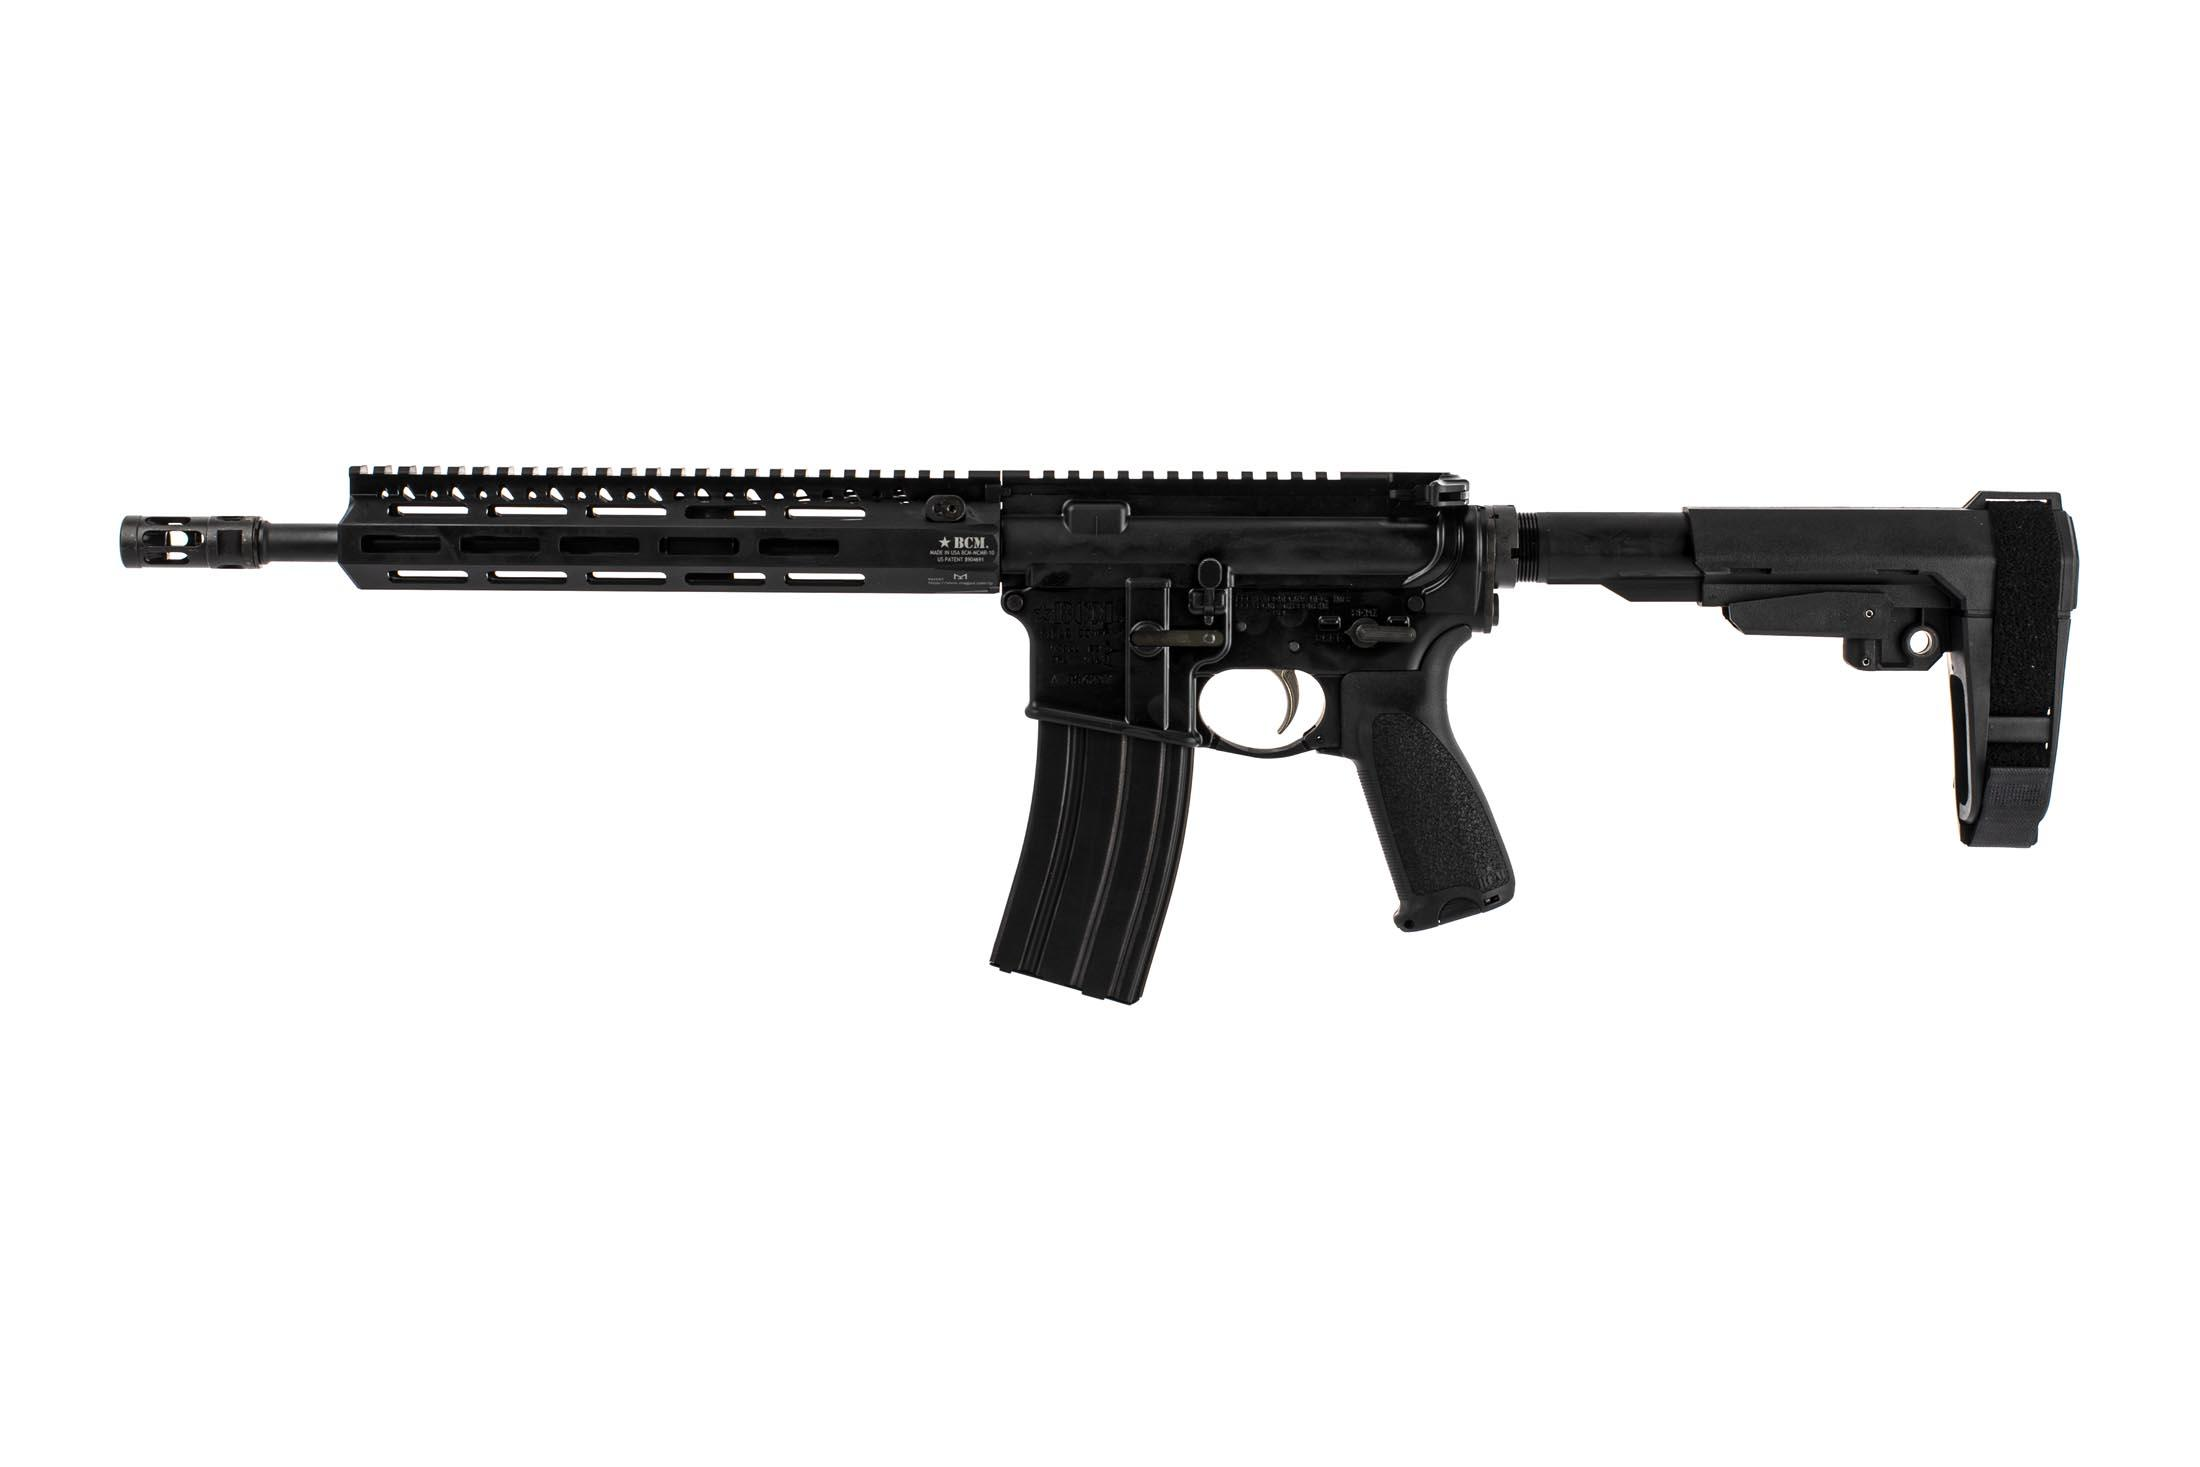 Bravo Company Manufacturing 12.5 RECCE-12 M-LOK rifle with pistol gas system and BCM PNT trigger